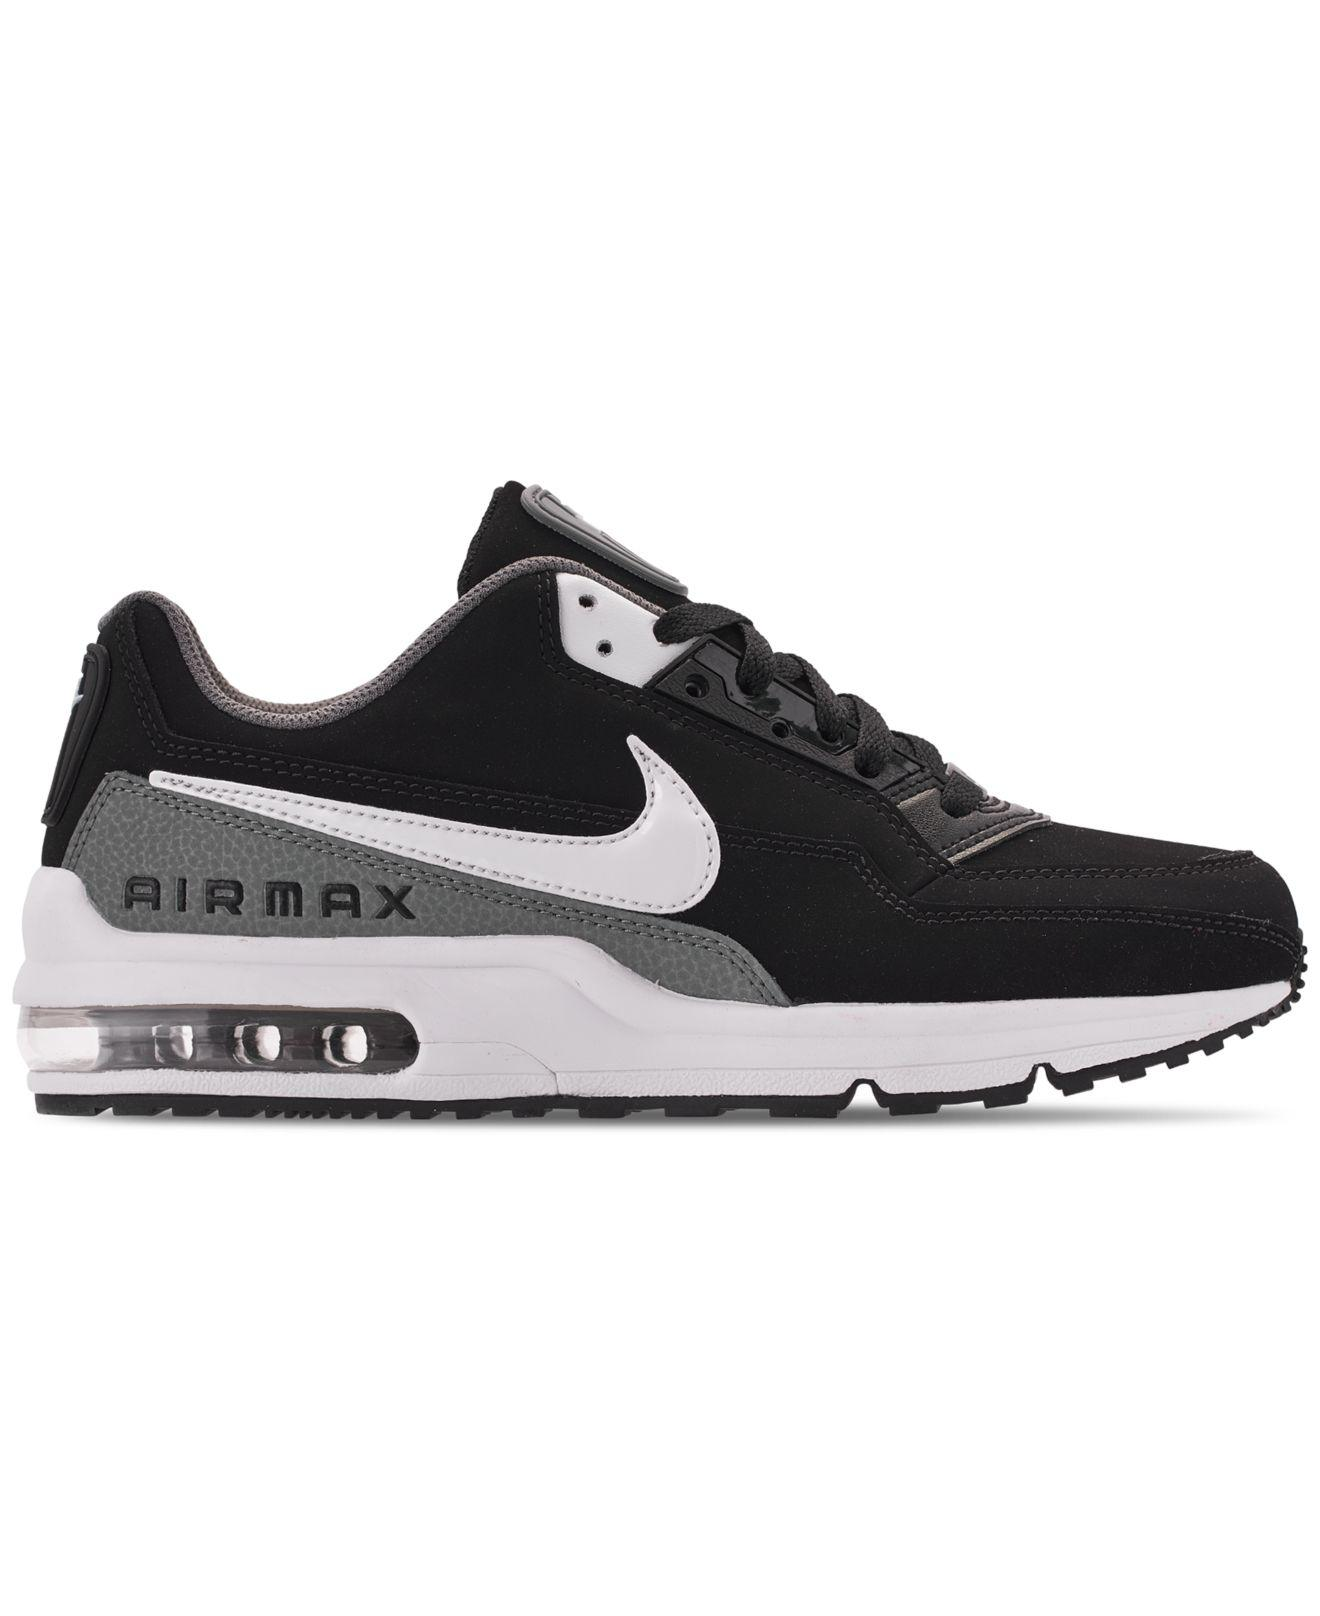 Lyst - Nike Air Max Ltd 3 Running Sneakers From Finish Line in Black for Men 4e1dca90c3